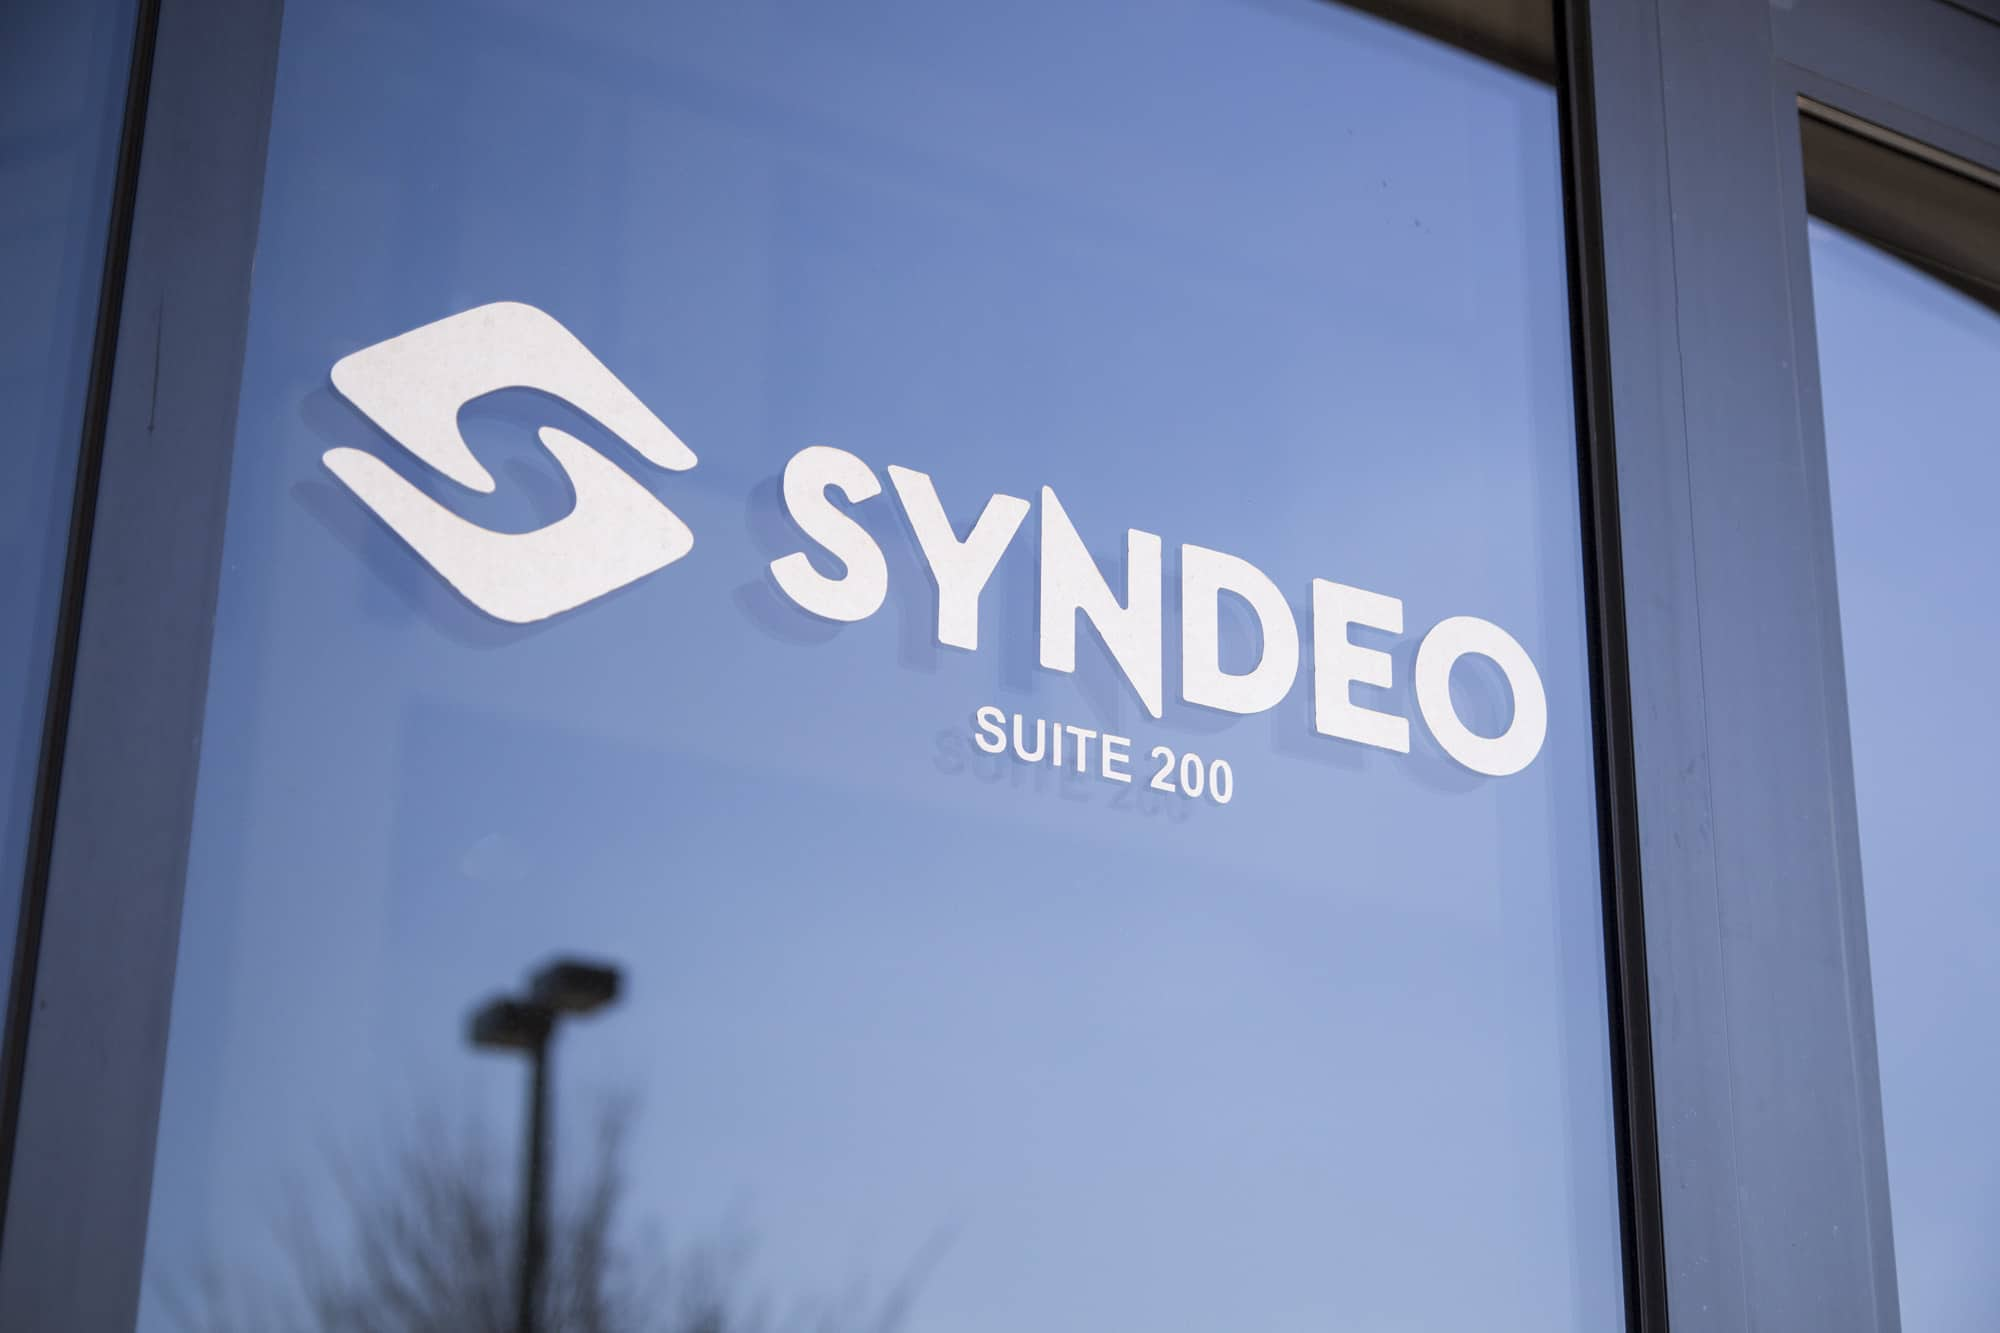 Syndeo Outsourcing named Wichita Business Journal Best Places to Work finalist